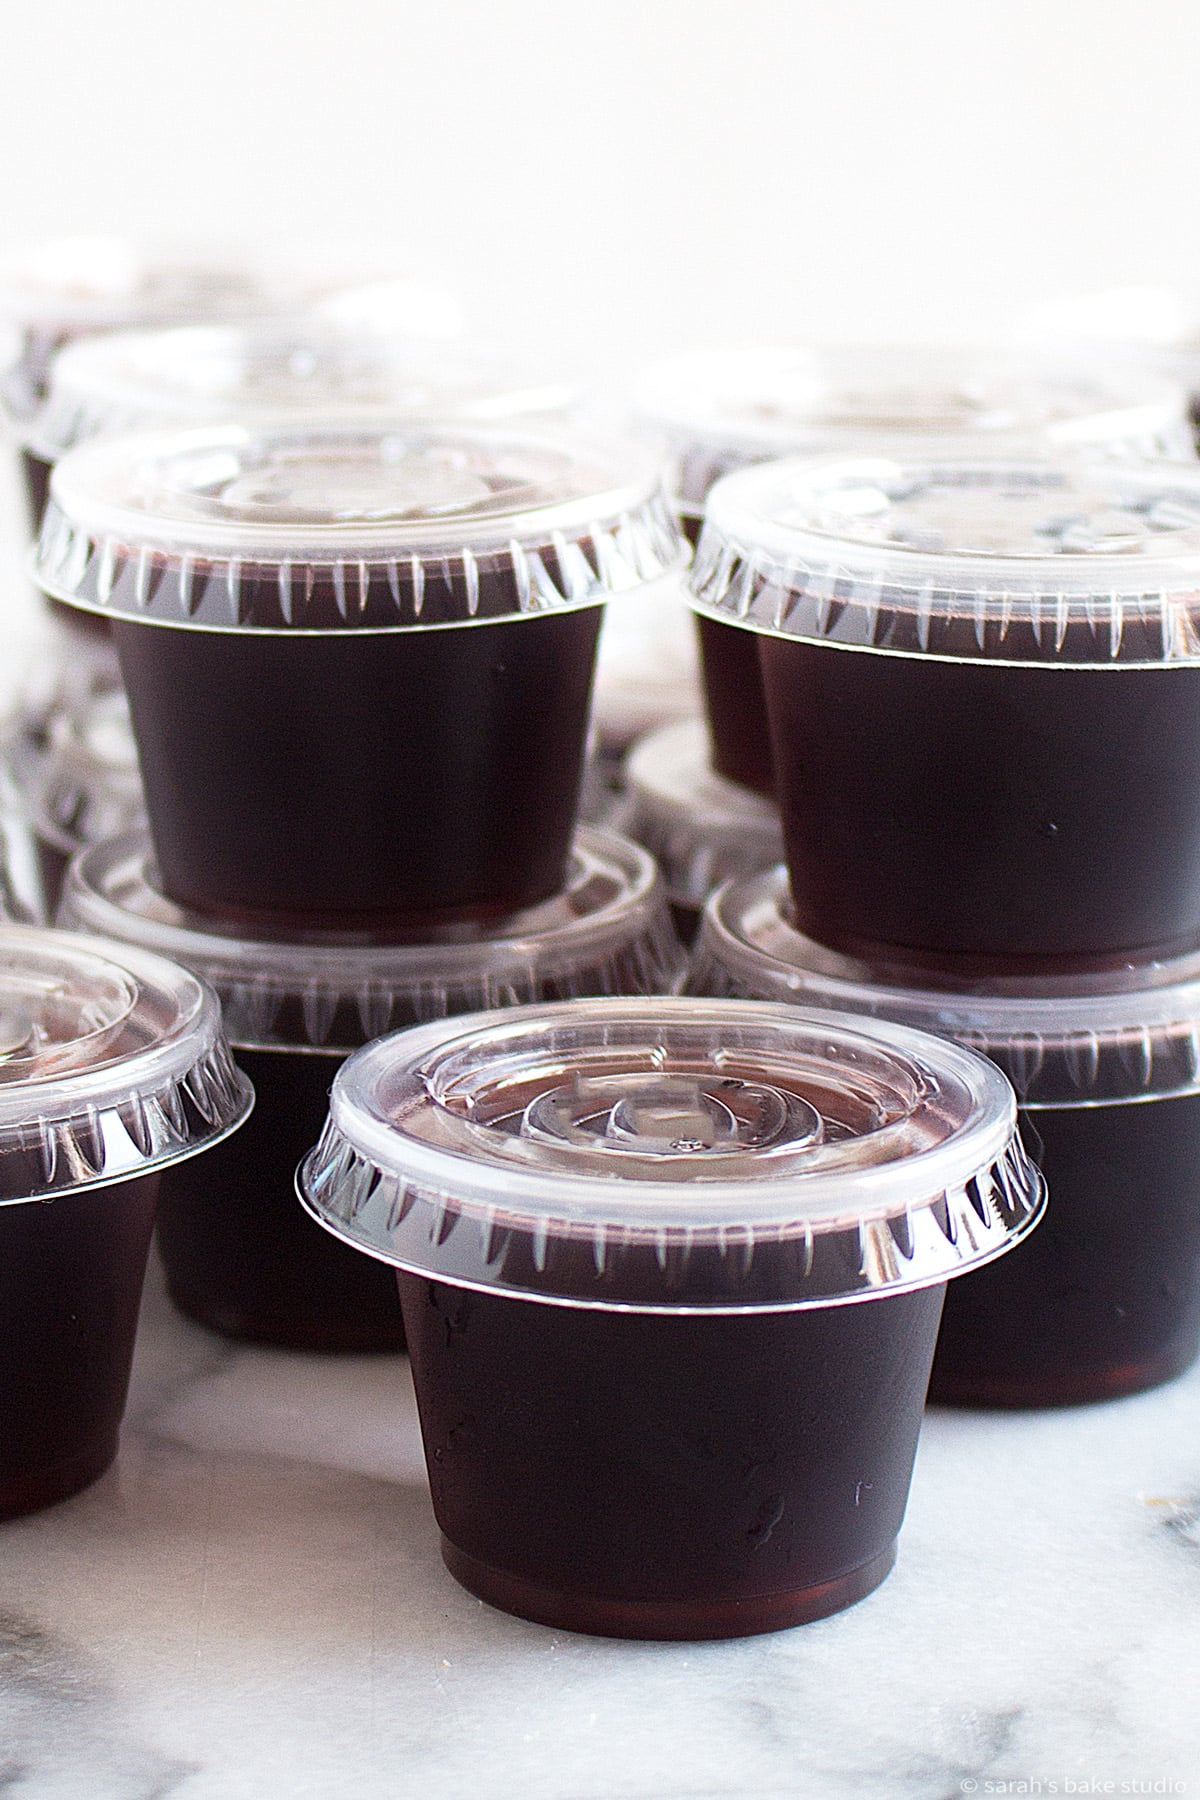 rum and coke jello shots in plastic one-ounce cups with lids